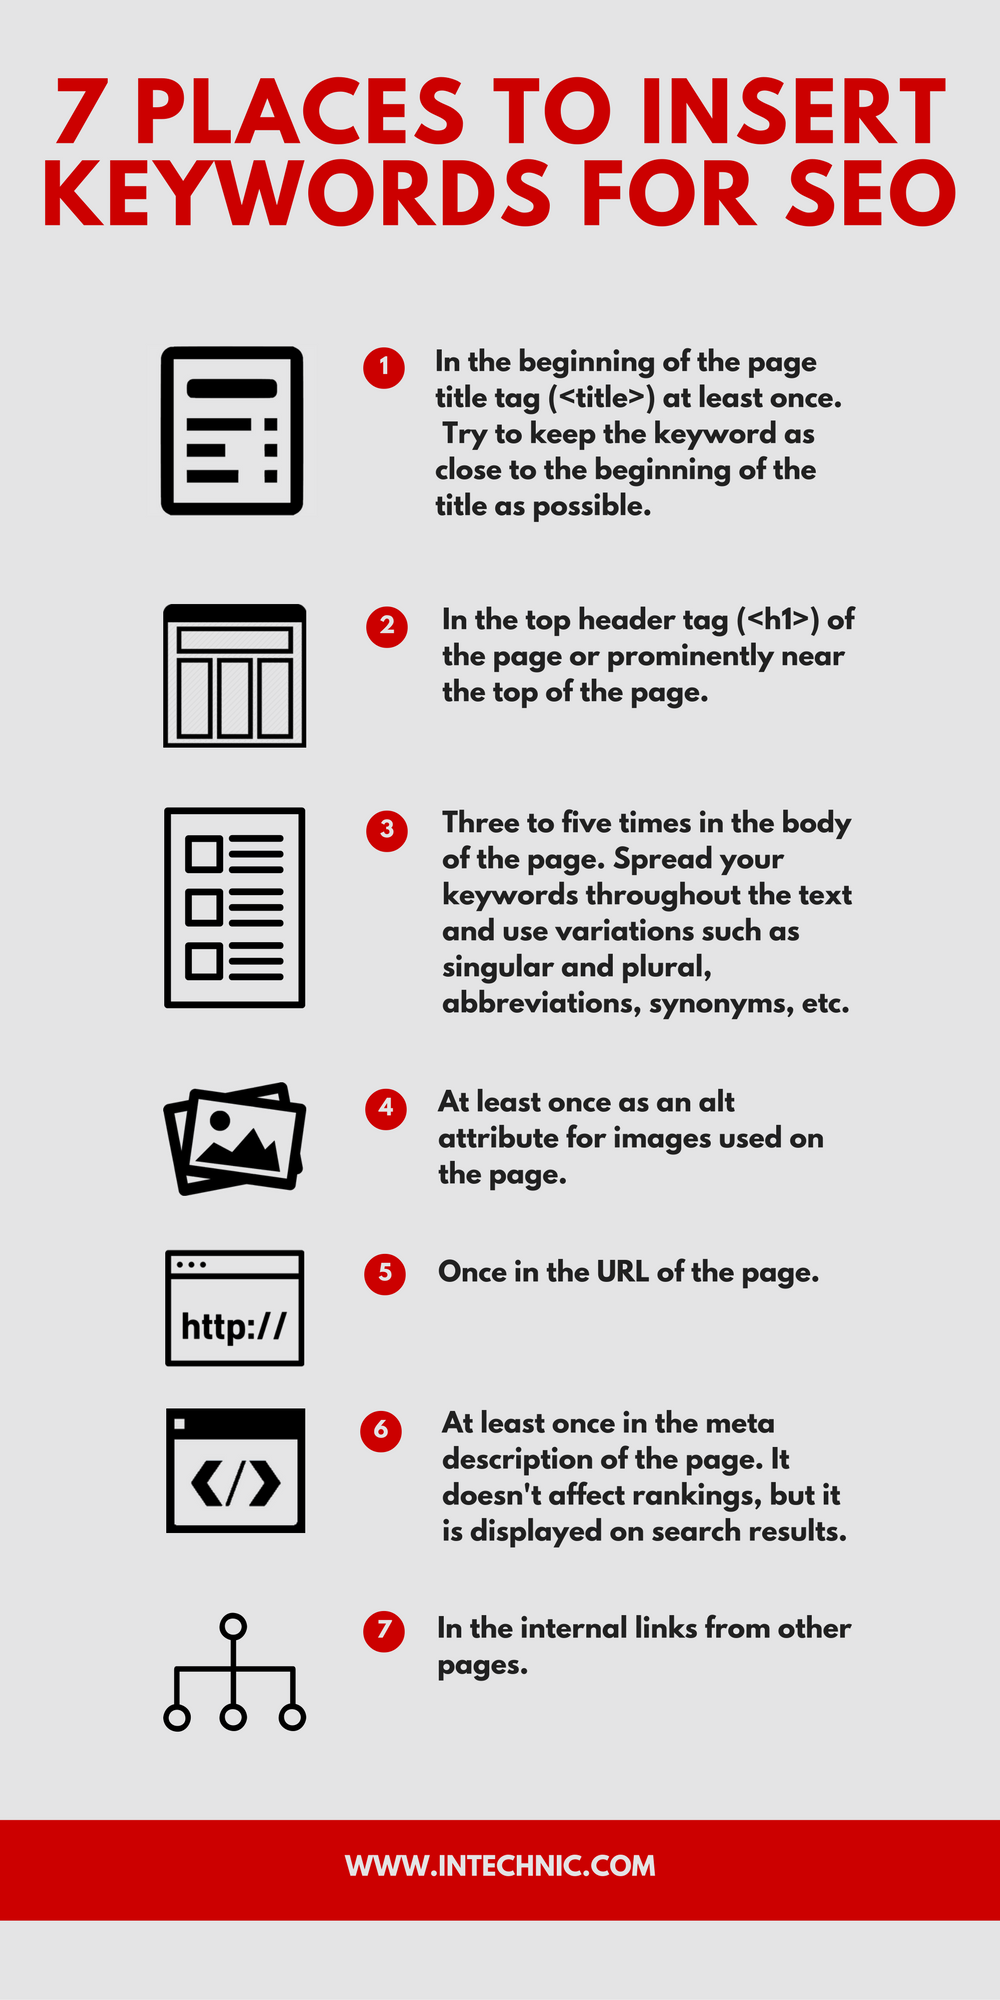 Best Places to Insert Keywords for SEO - Infographic